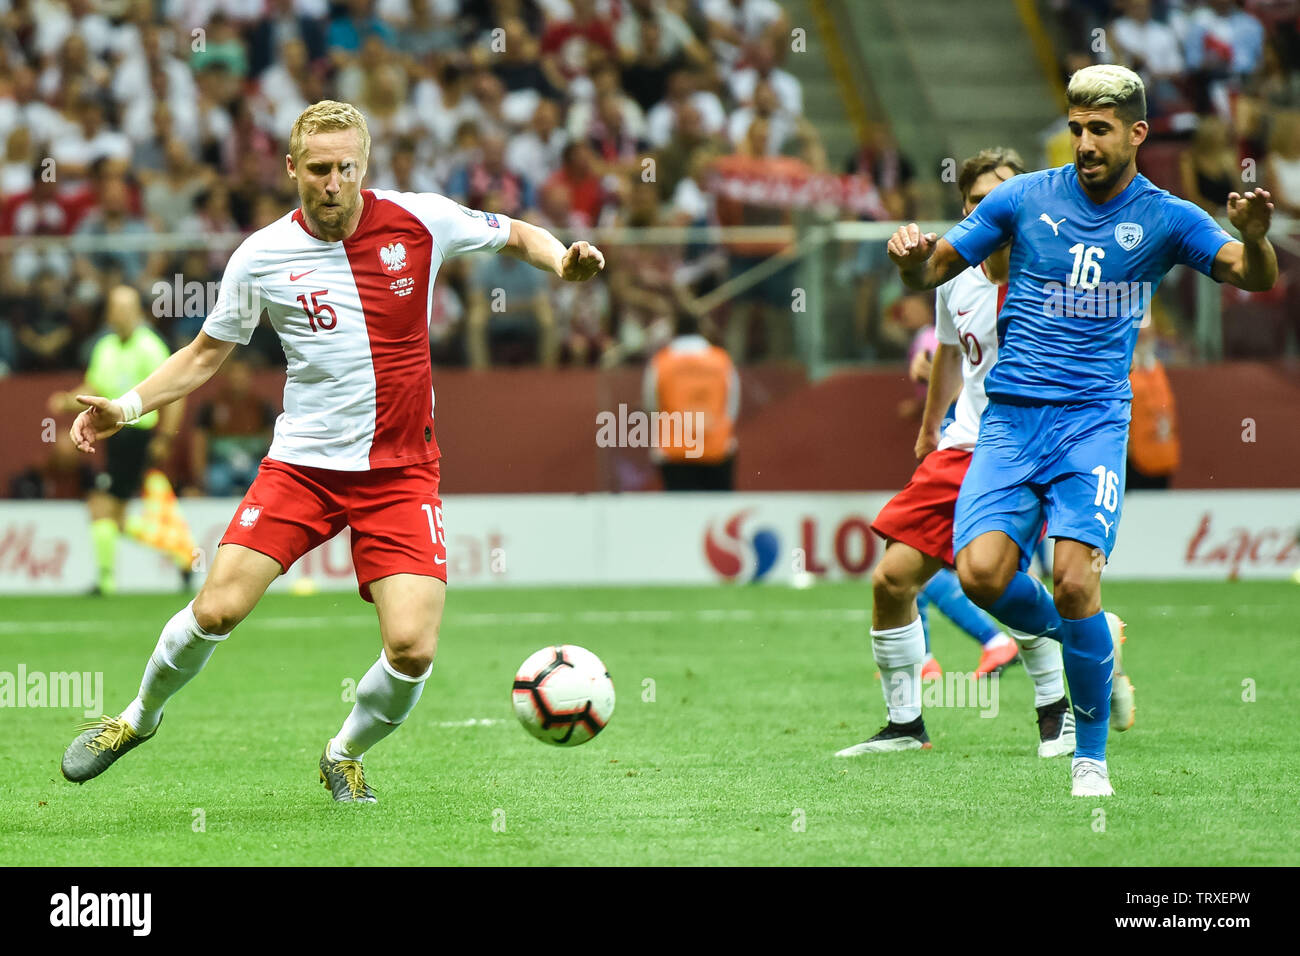 WARSAW, POLAND - JUNE 10, 2019: Qualifications Euro 2020  match Poland - Israel 4:0. In action Kamil Glik (L) and Yonatan Cohen (R). Stock Photo